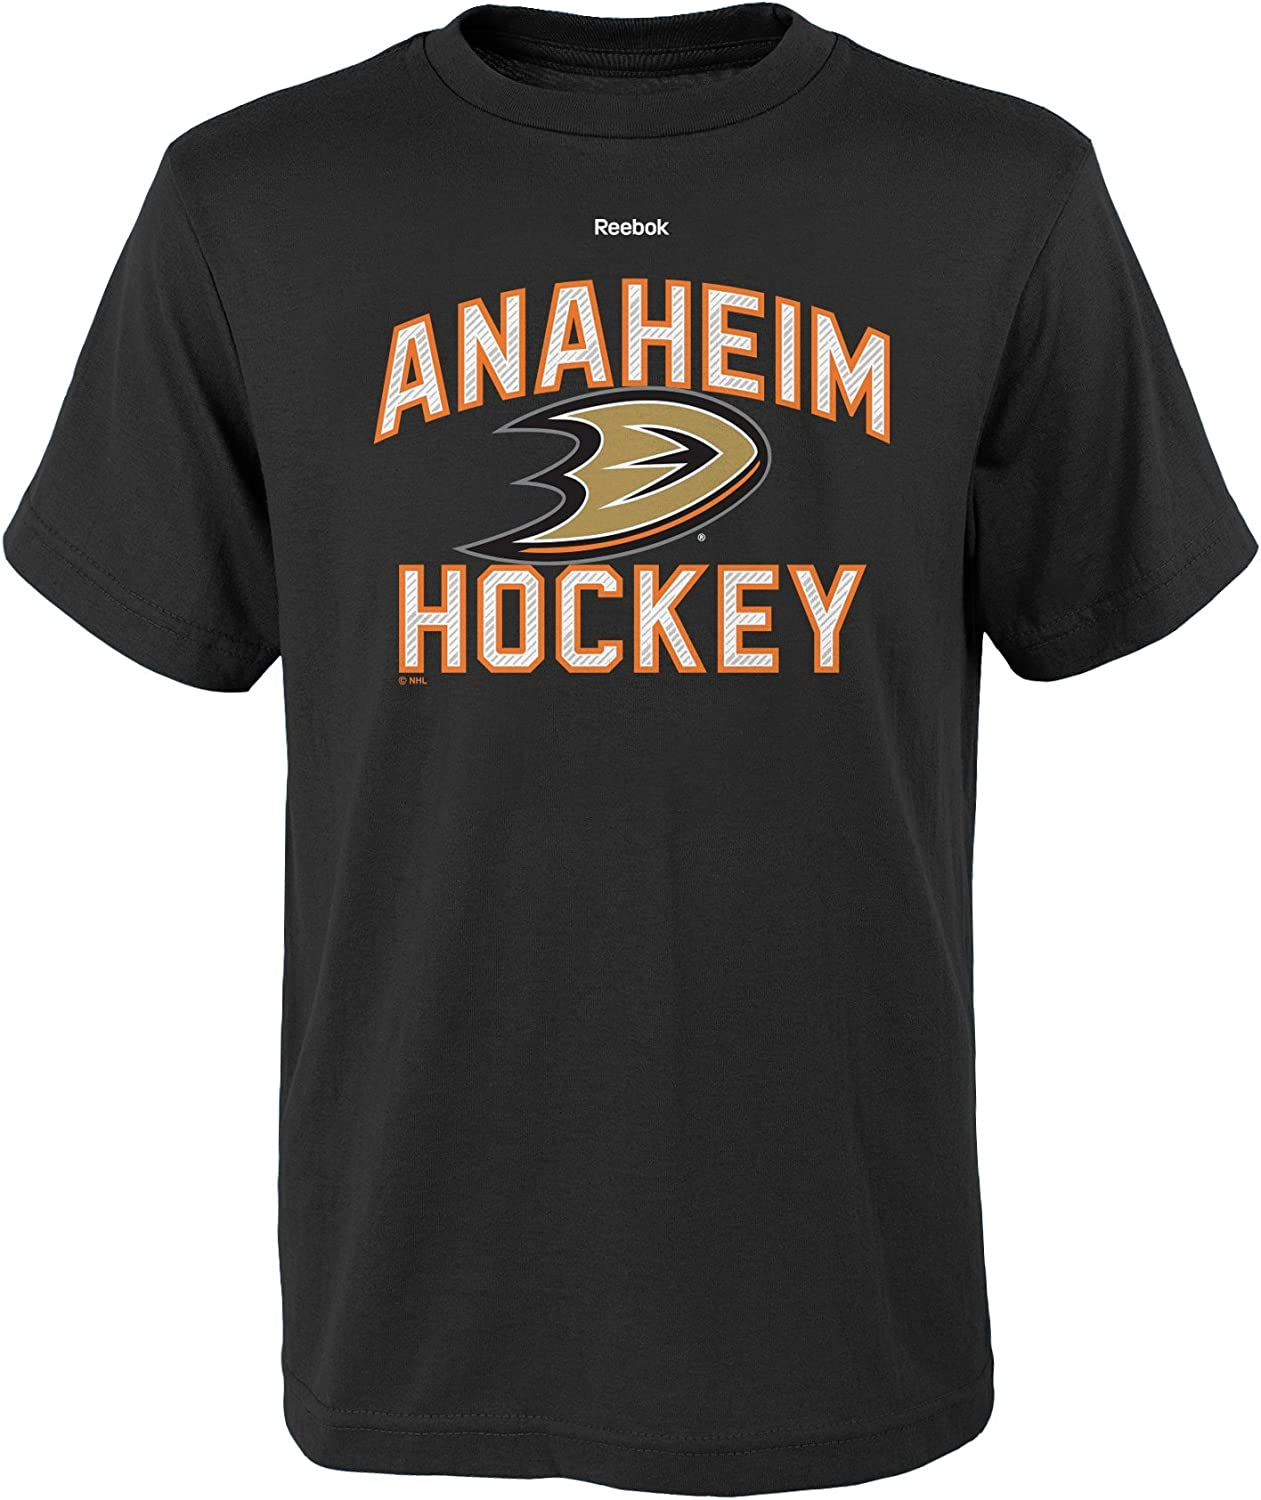 Outerstuff NHL Boys NHL Youth Boys Short Sleeve Open Net Tee